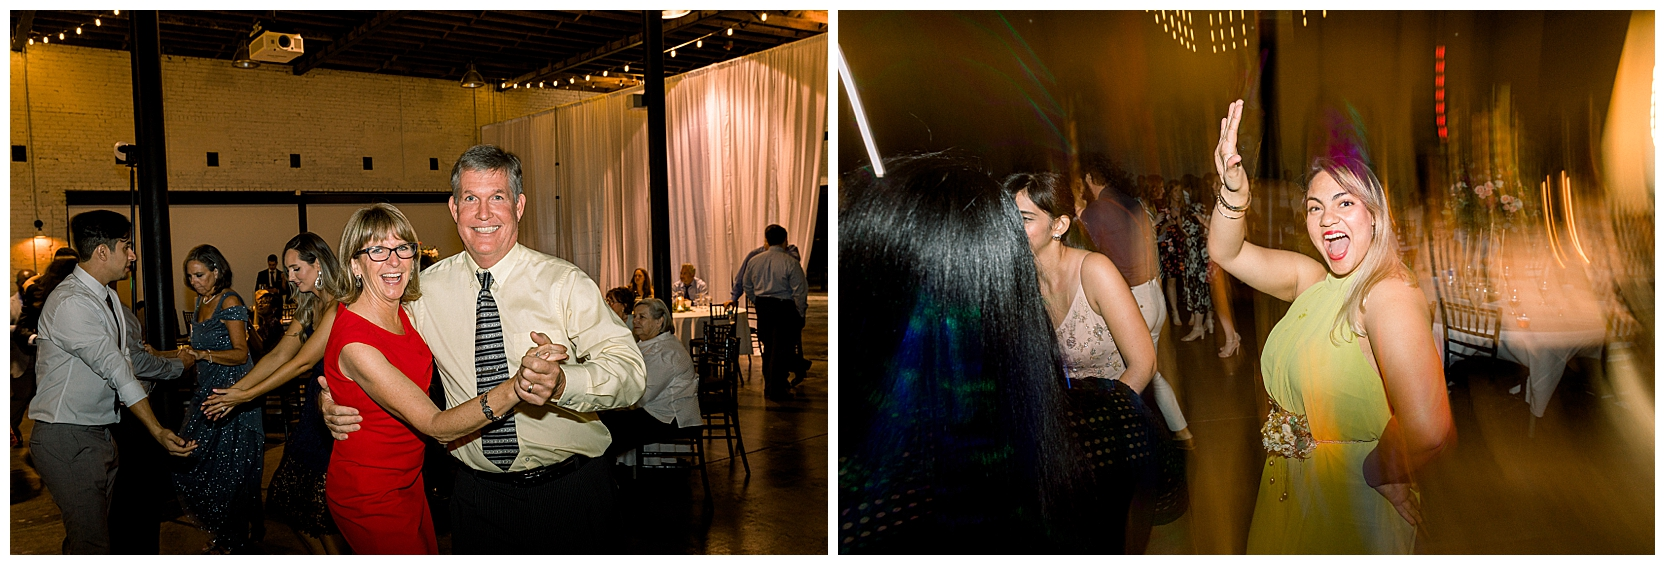 jessicafredericks_lakeland_tampa_wedding_purple_crazy hour_0086.jpg